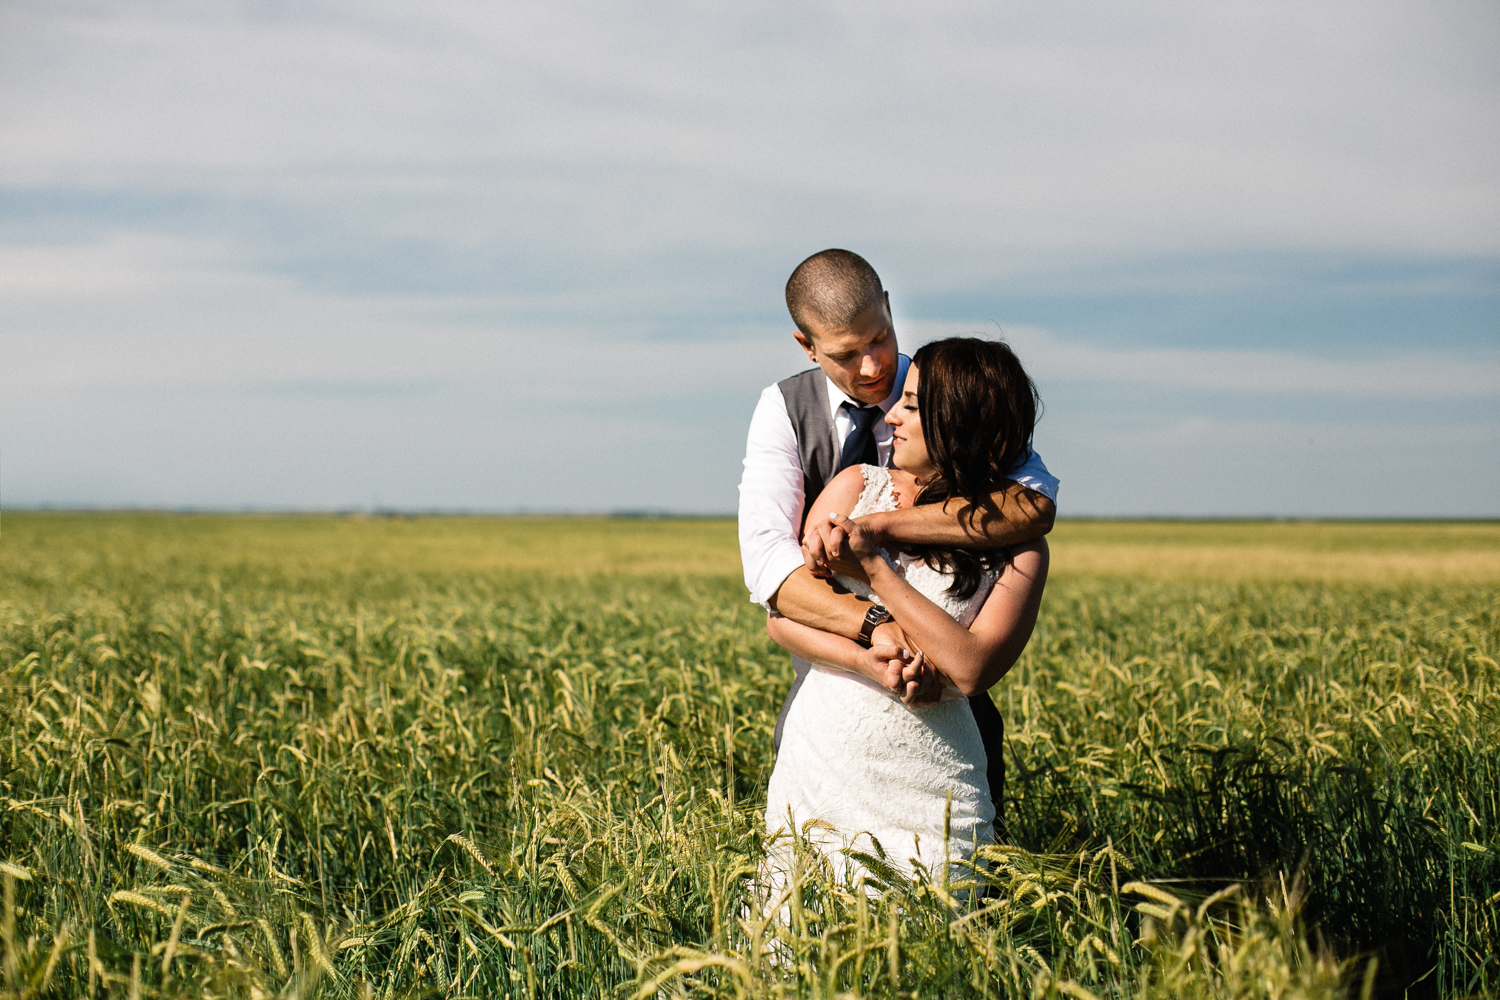 lethbridge-wedding-photography-love-and-be-loved-photographers-ashlin-anne-backyard-wedding-image-picture-photo-315.jpg